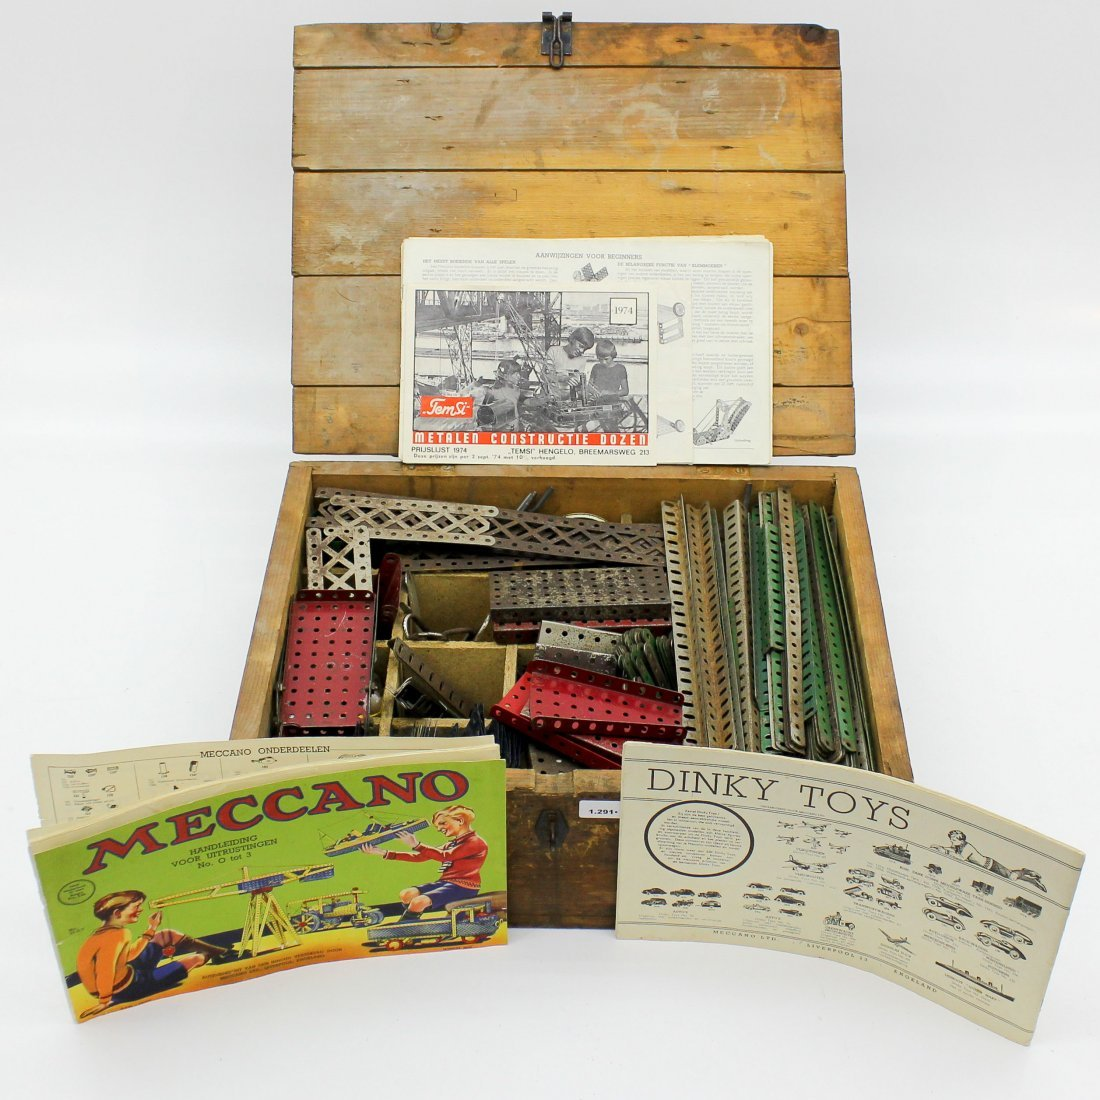 Meccano Toy Box with Old Metal Construction Toys